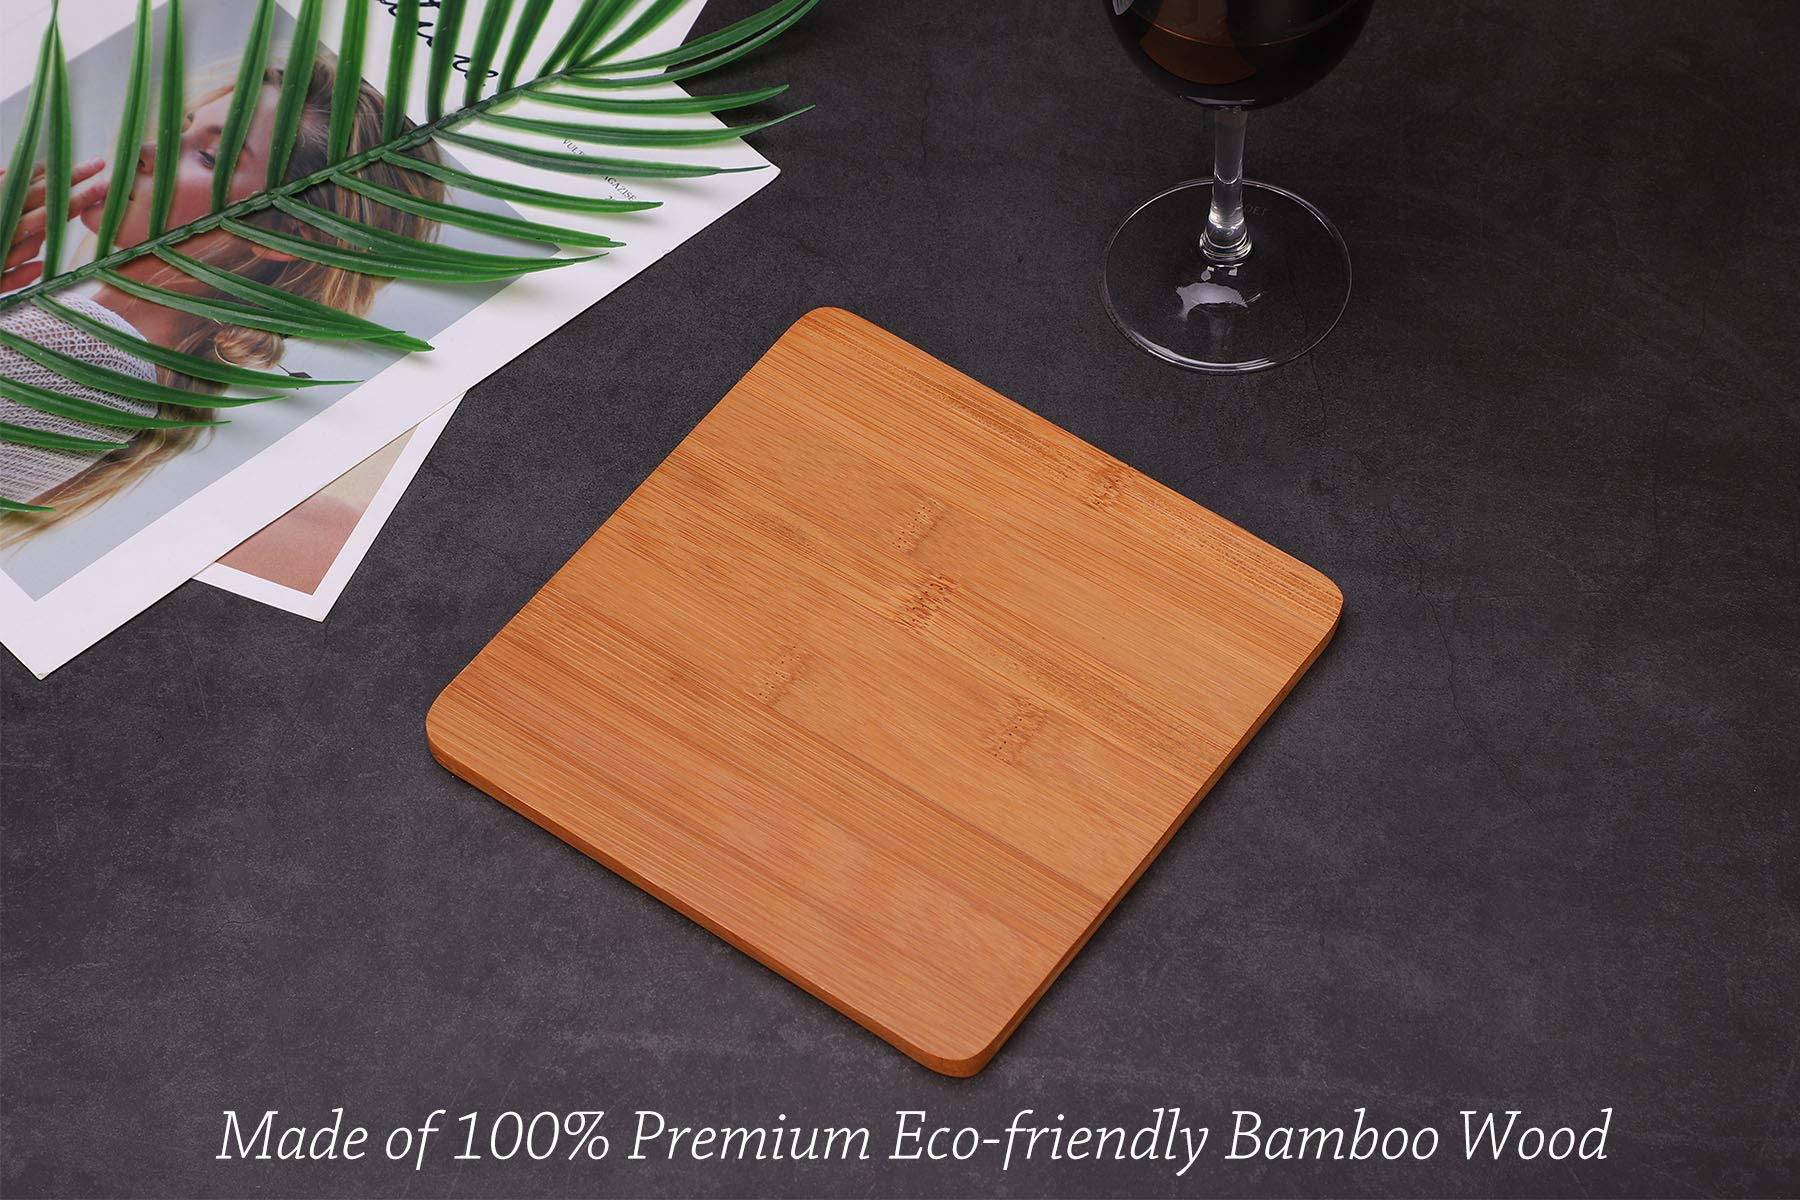 Ceramic Divided Plate with Bamboo Cutting Board - Cheese Board Salad Plate Dinner Plate Cake Plate - Gift Idea - Great Use as Any Occasion (White) by One Goods-1 (Image #5)